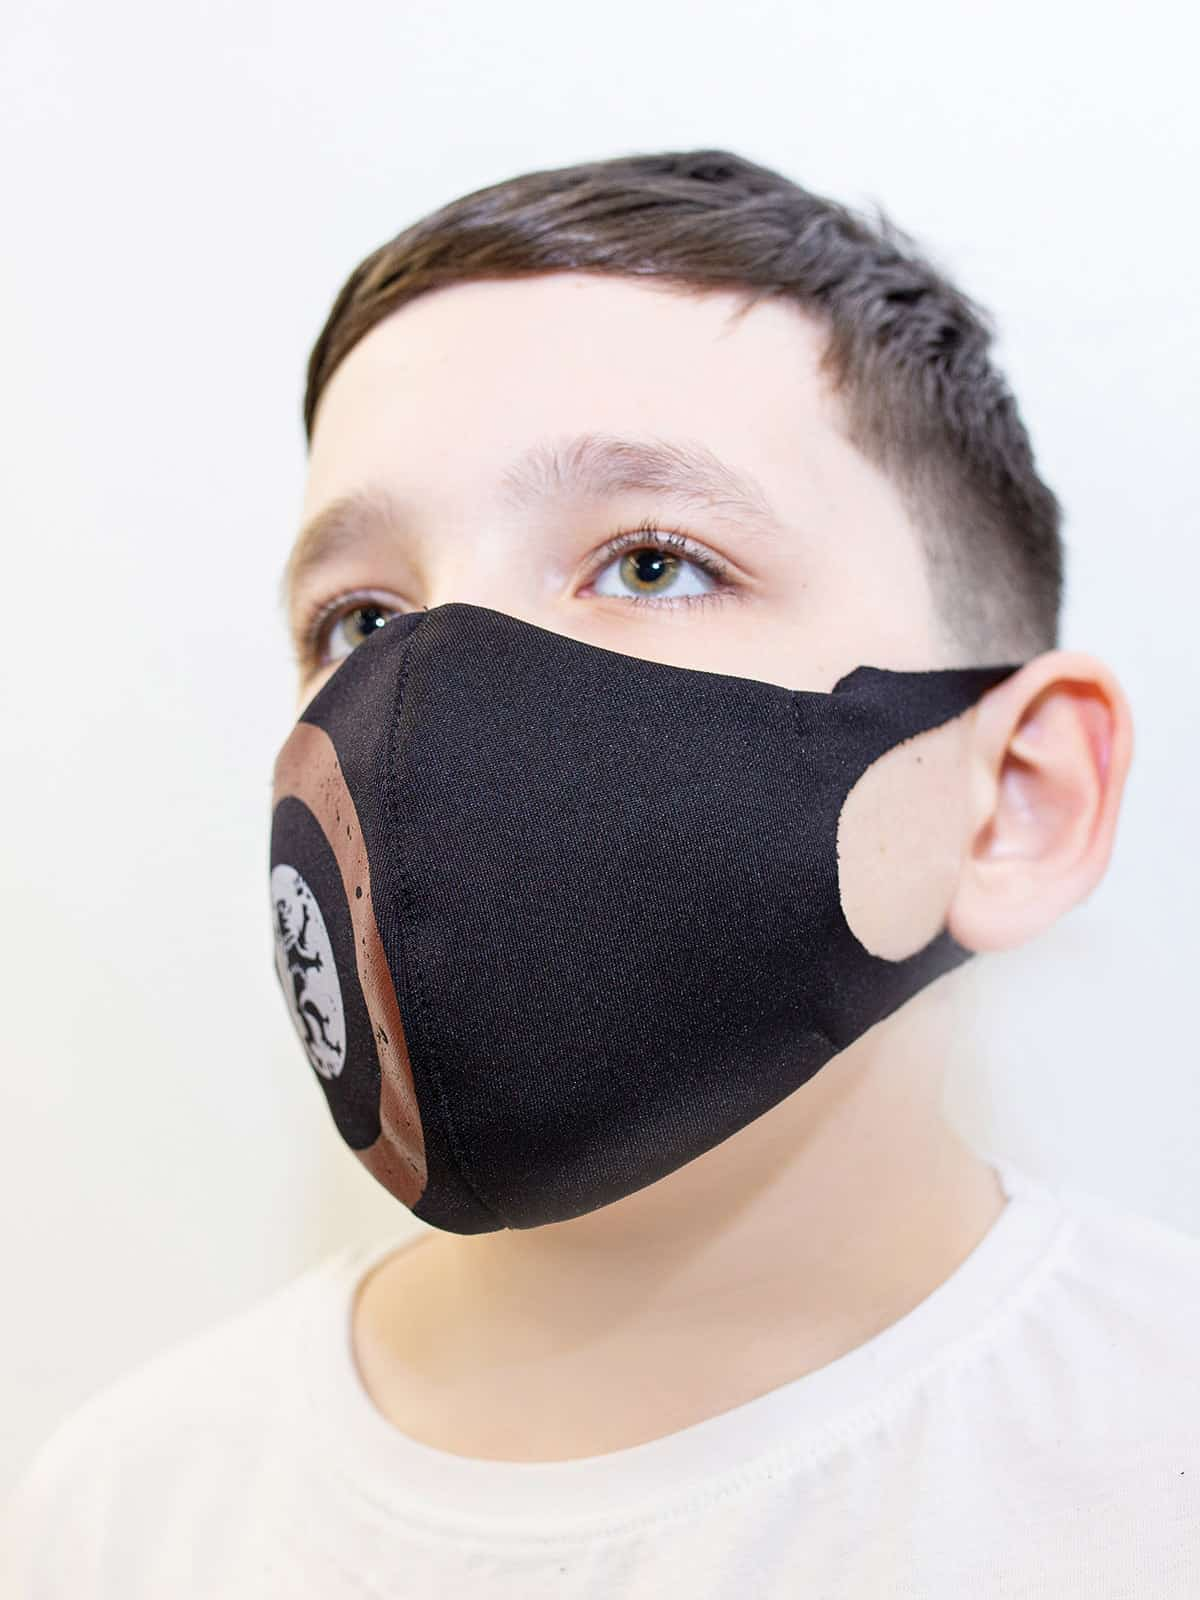 Kids Mask Lion (Roundel). Color black.  There is a knitwear lining/pocket from the inside (95% cotton, 5% elastane) for the replaceable filter.